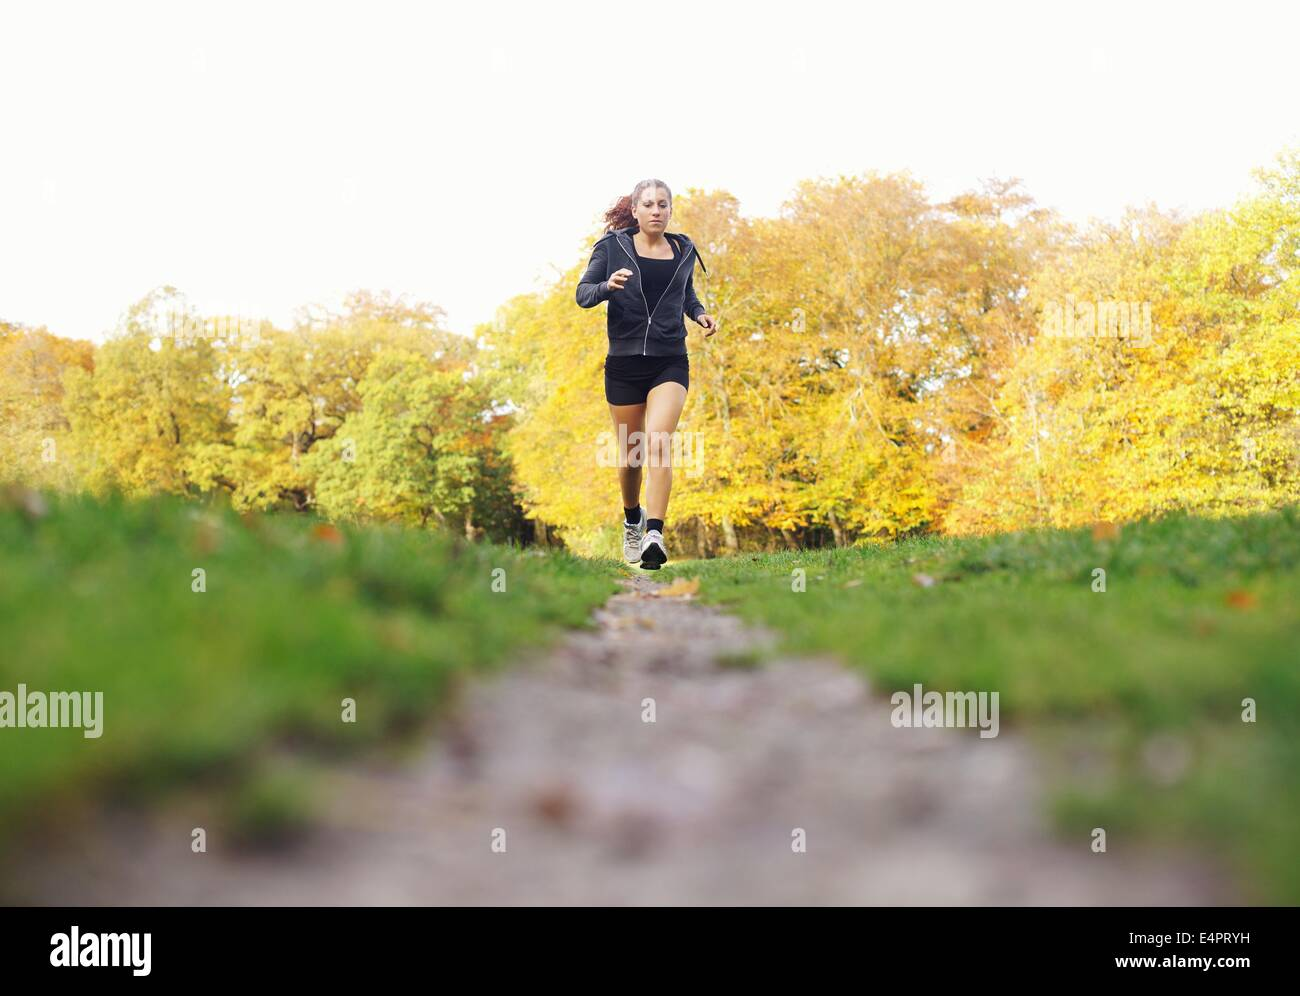 Fit young woman jogging in a park on a summer day. Healthy female athlete exercise running in park - Outdoors - Stock Image